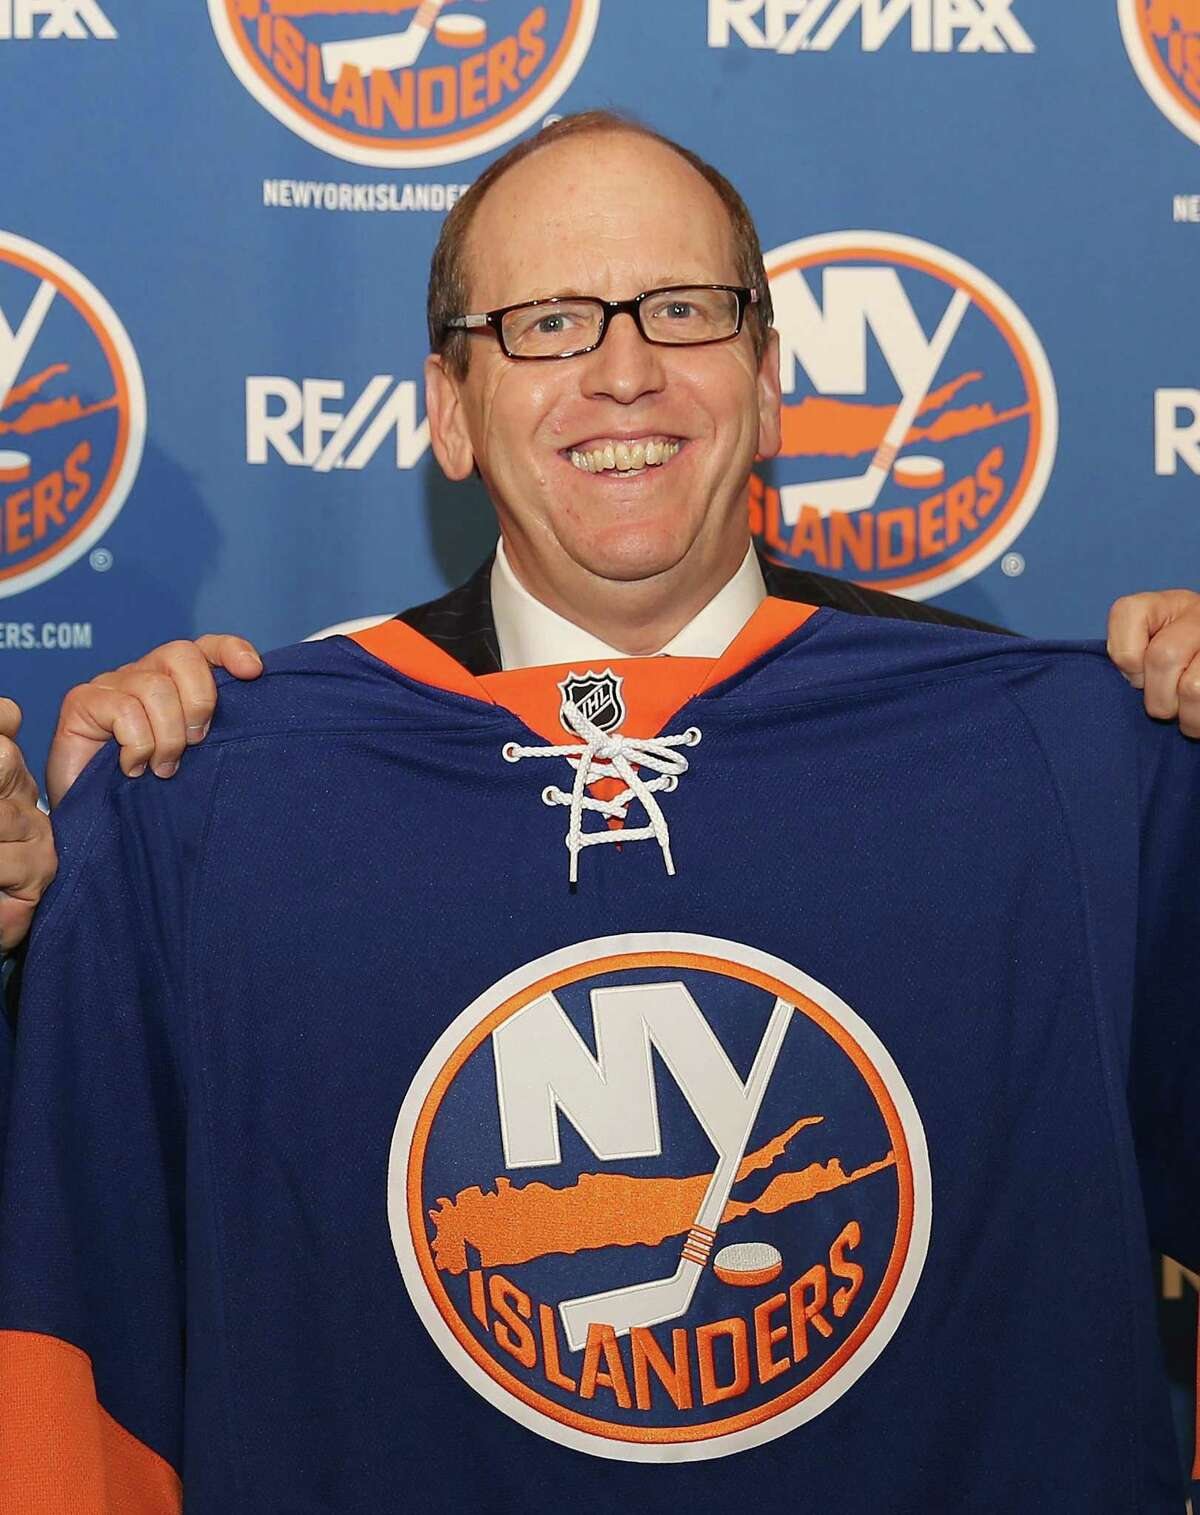 New York Islanders partner Jon Ledecky poses for a photo during a press conference at Nassau Coliseum on Oct. 22, 2014 in Uniondale, N.Y.